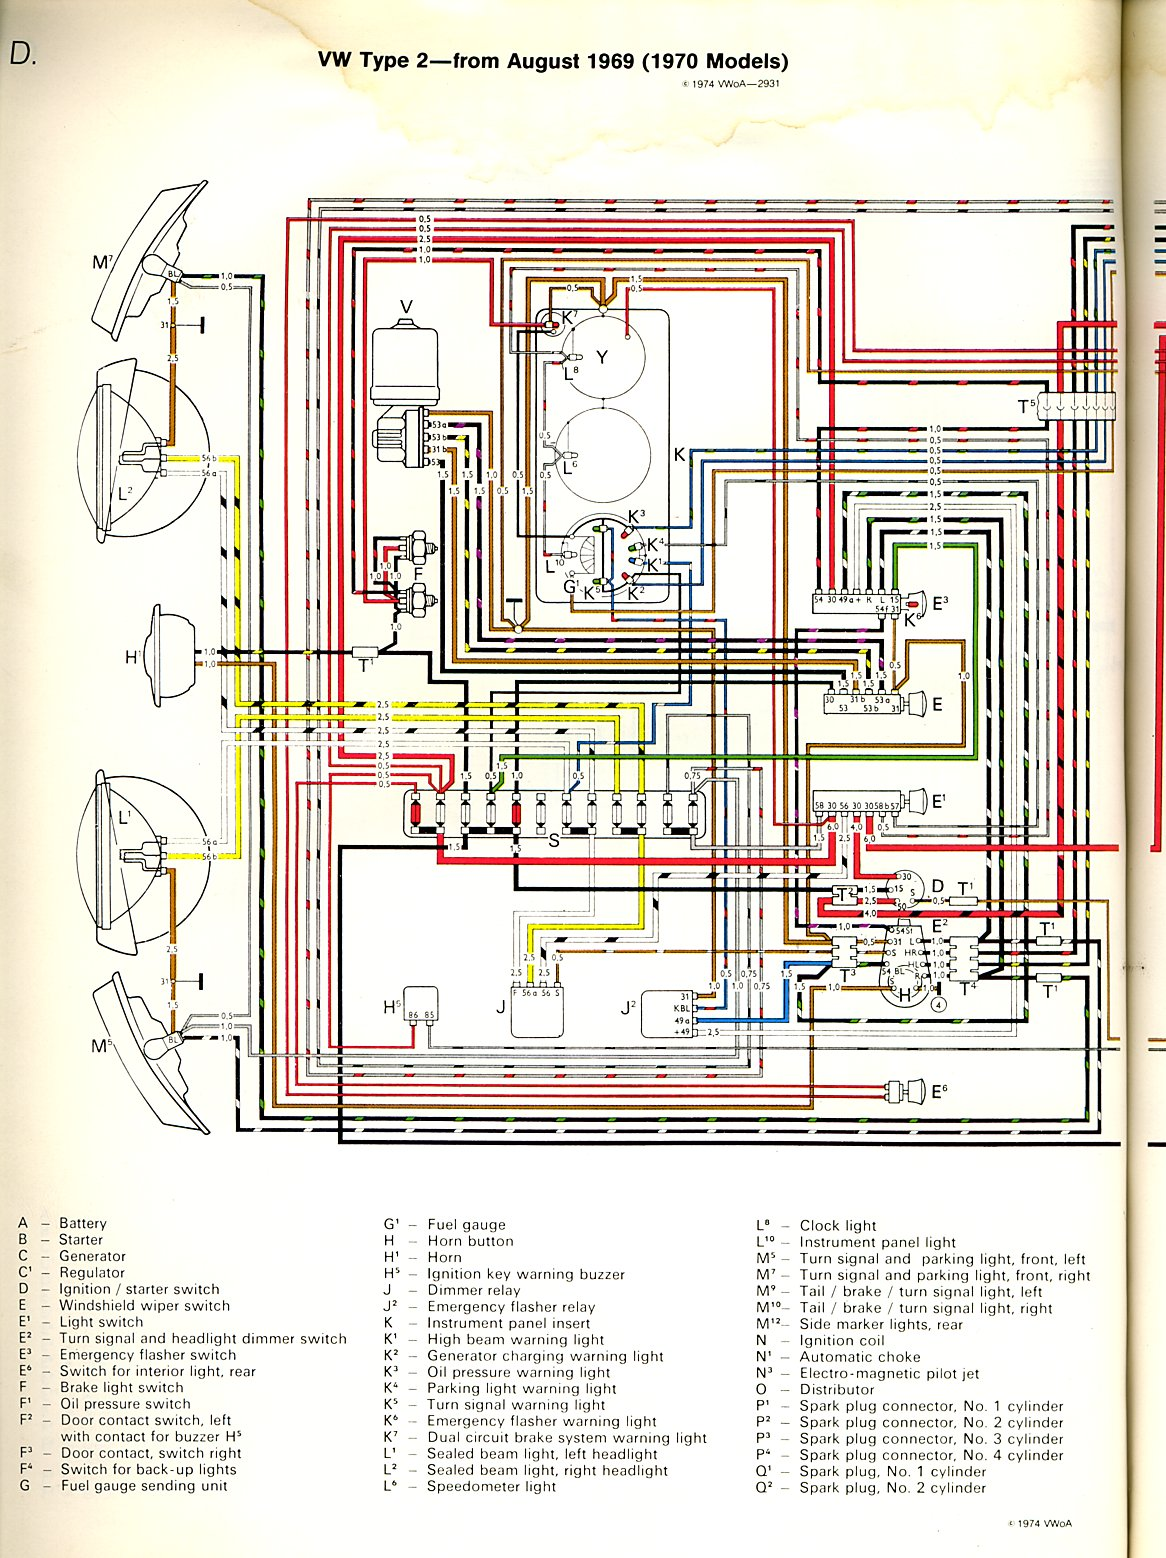 baybus_70a thesamba com type 2 wiring diagrams 1968 vw bug headlight wiring diagram at metegol.co